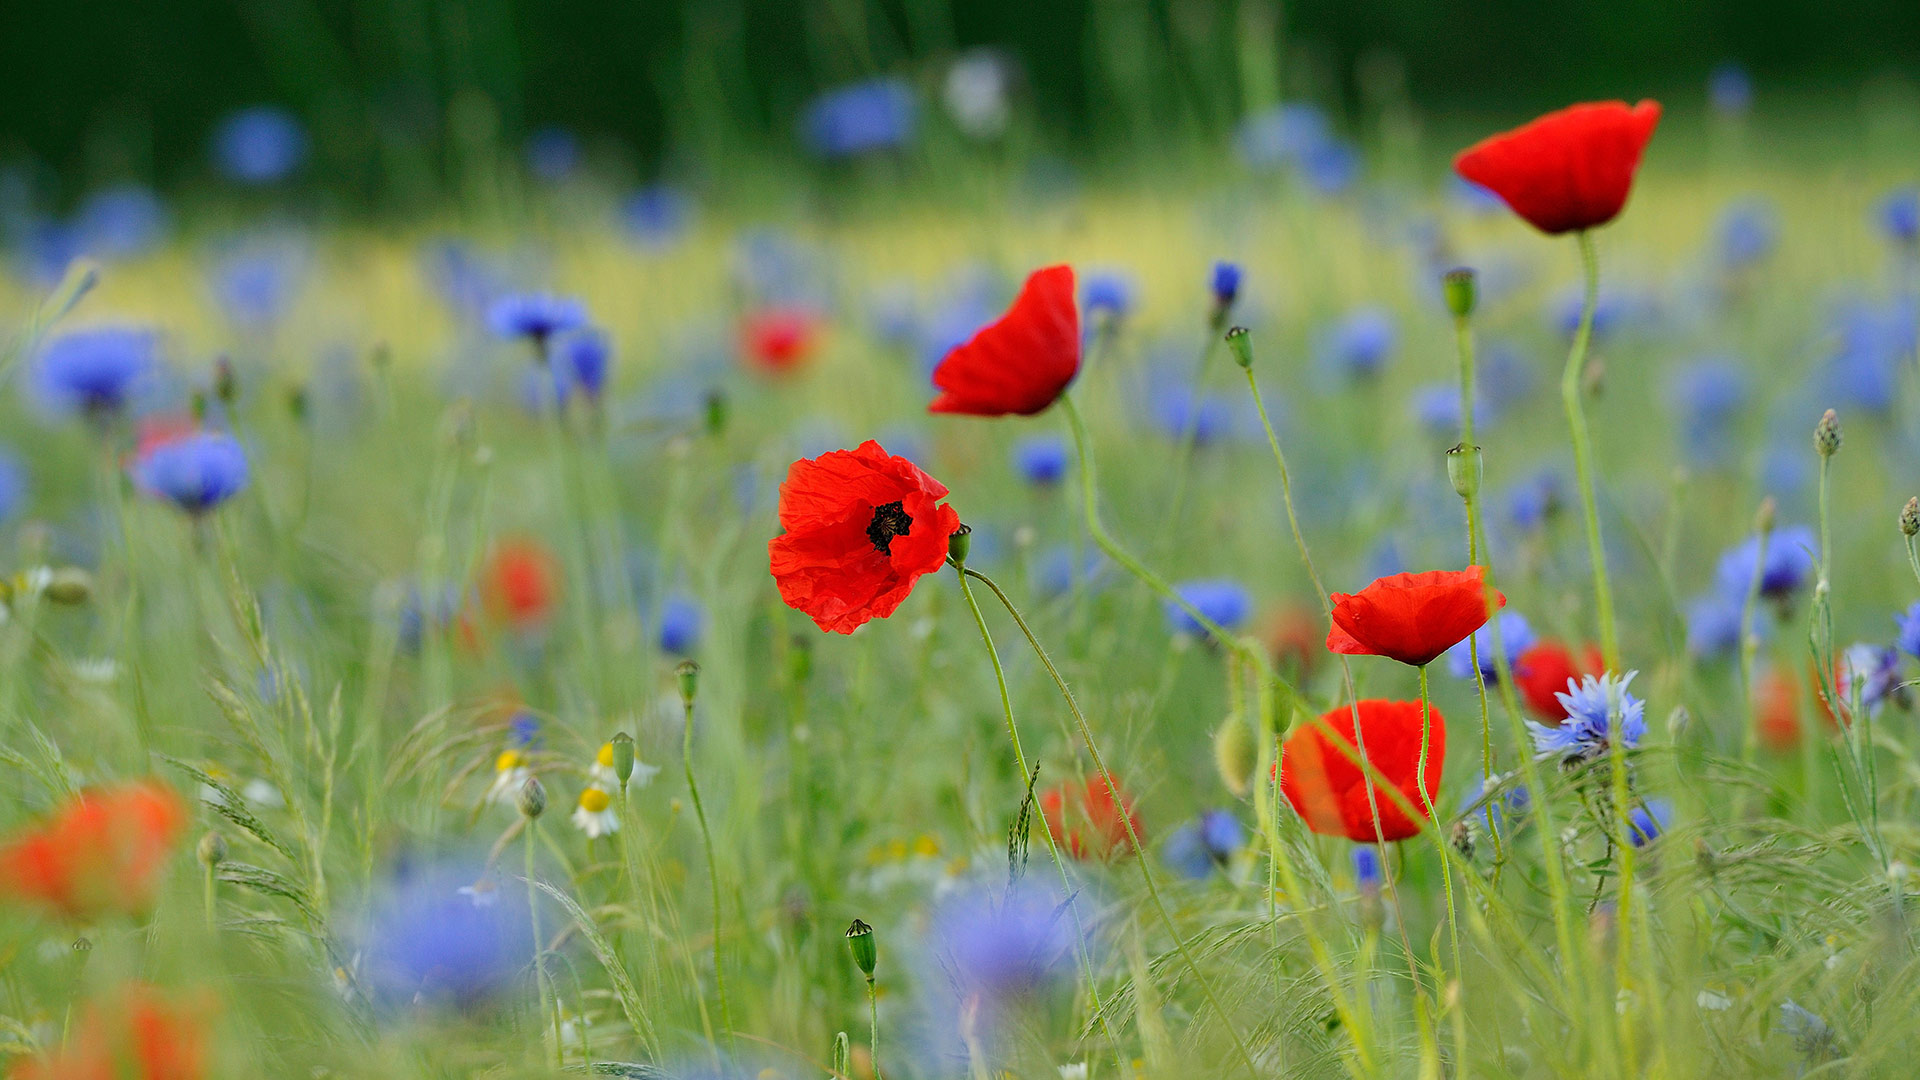 Meadow with common poppies and cornflowers, North Rhine-Westphalia, Germany (© imageBROKER/Alamy)